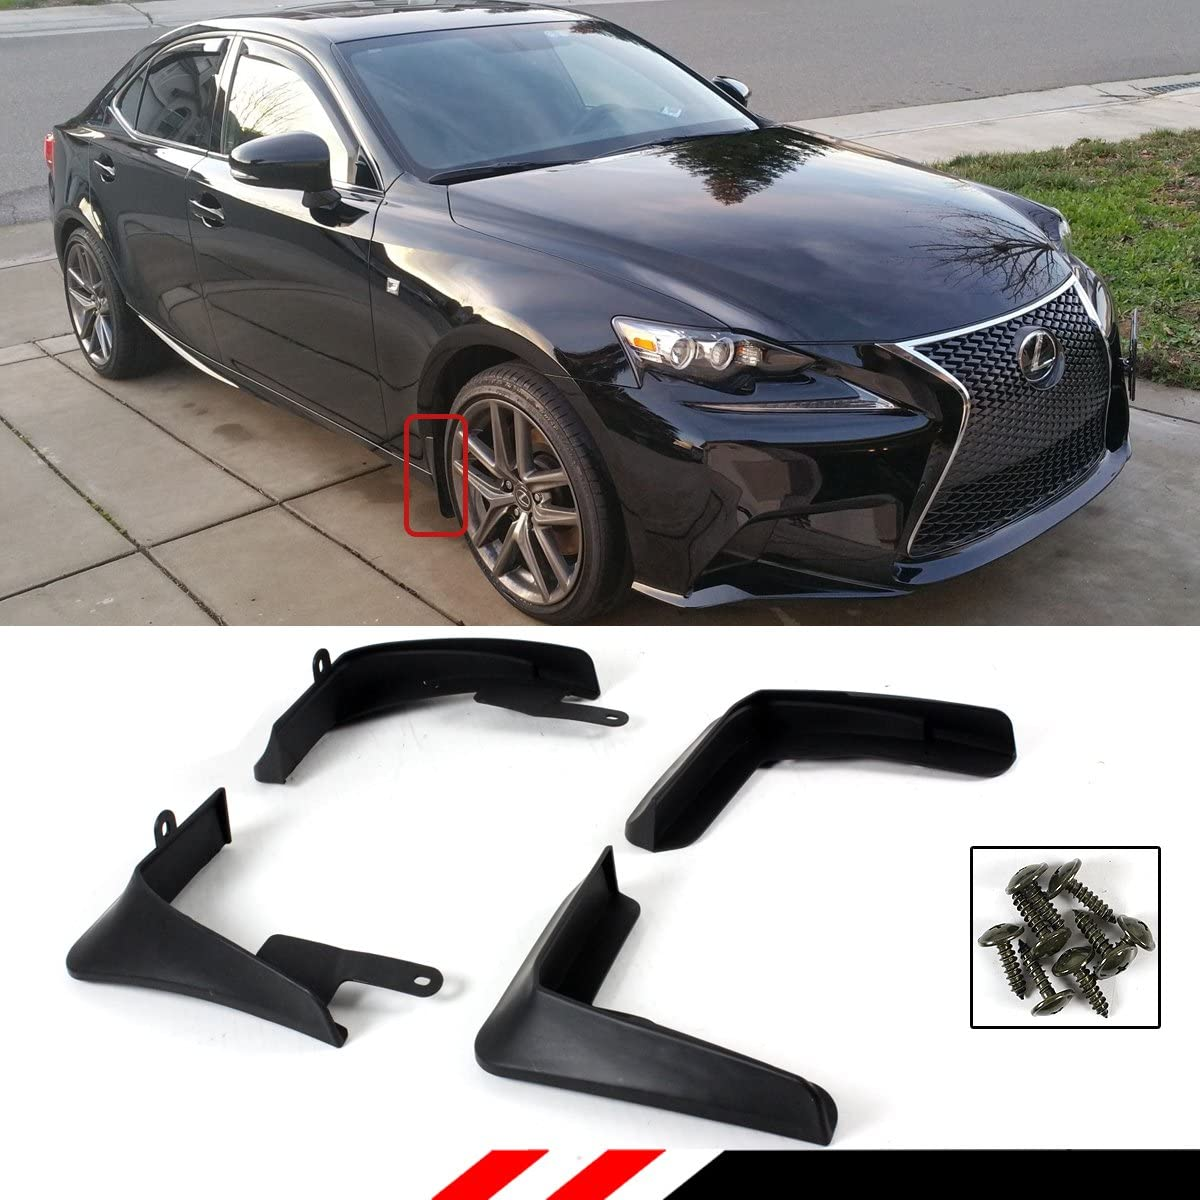 Set of 4 Front and Rear Mud Flaps Splash Guards for Lexus IS250 IS350 IS300